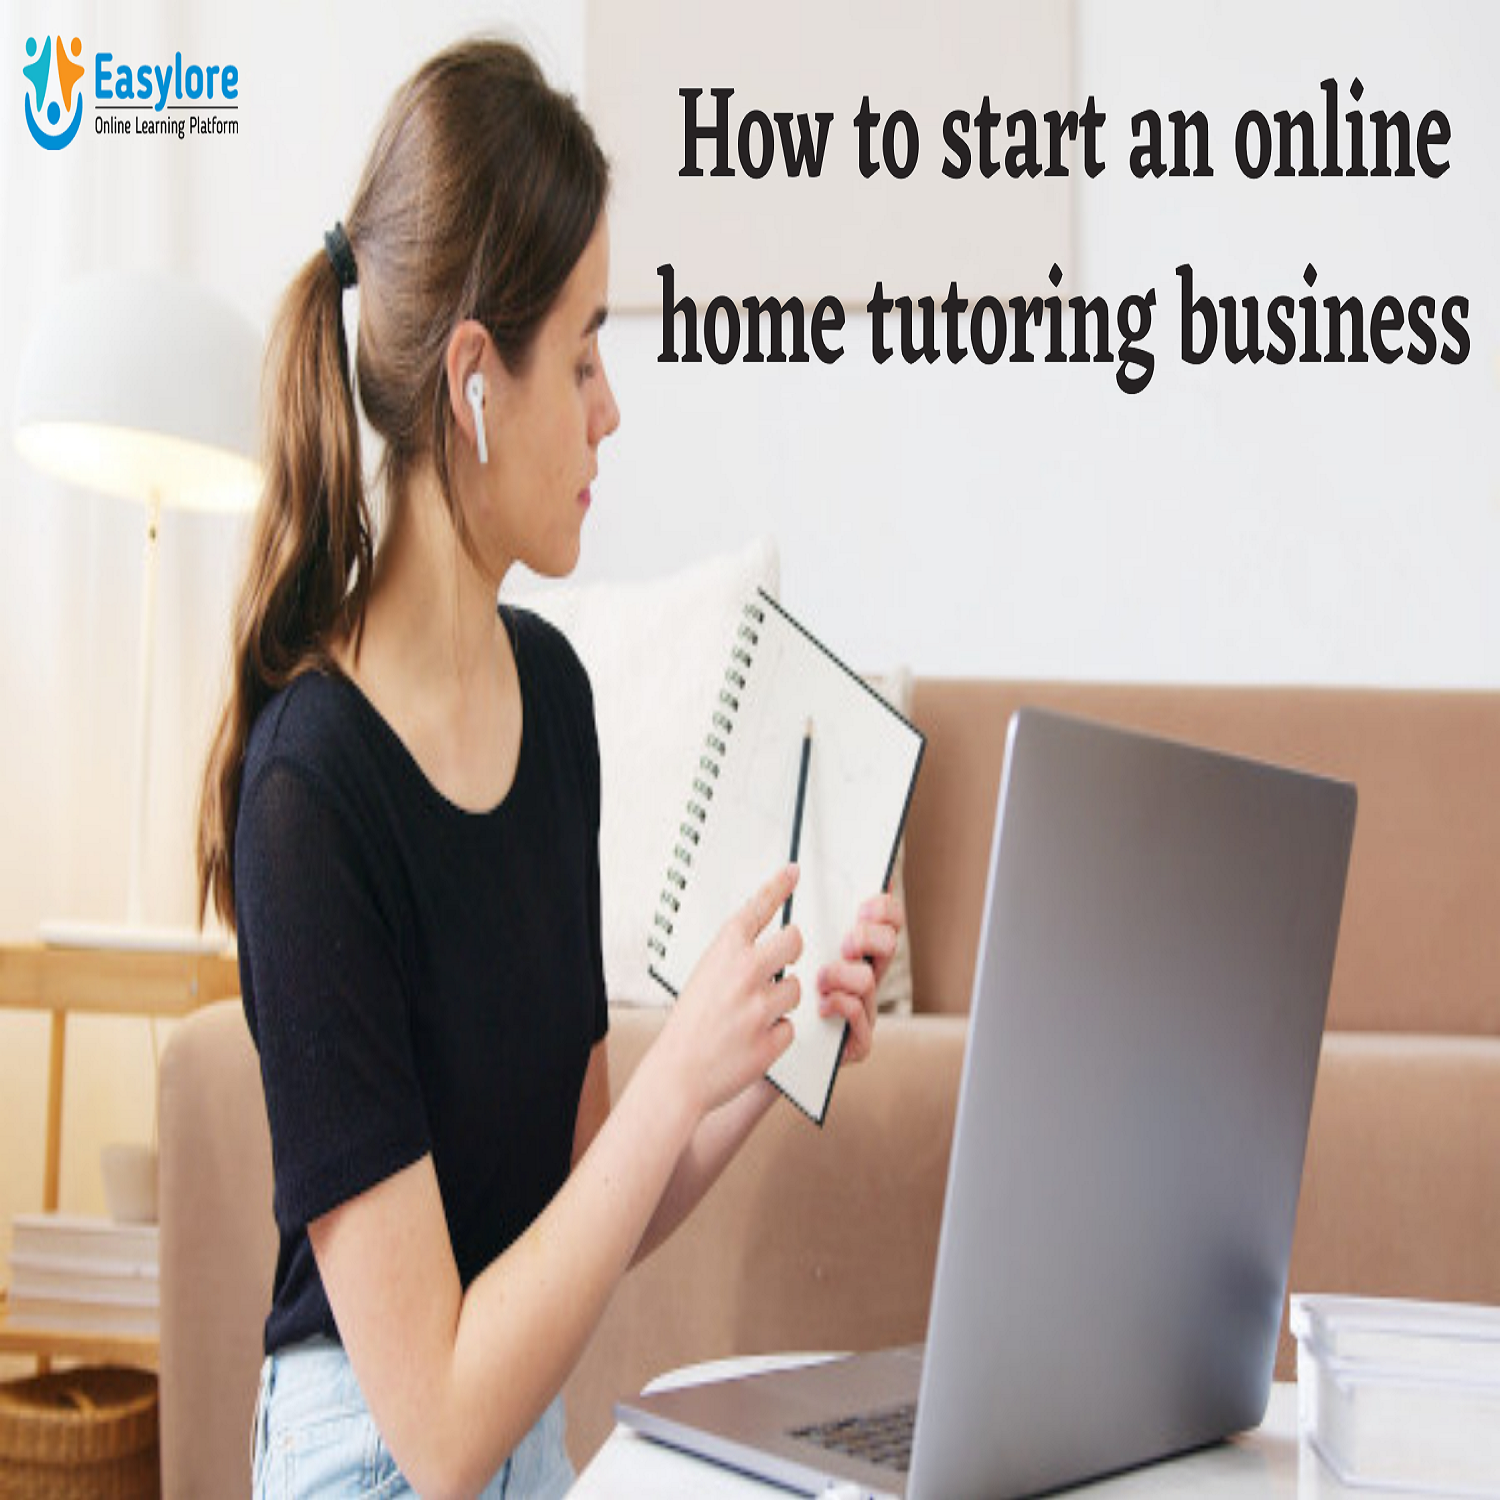 How to Start an Online Home Tutoring Business